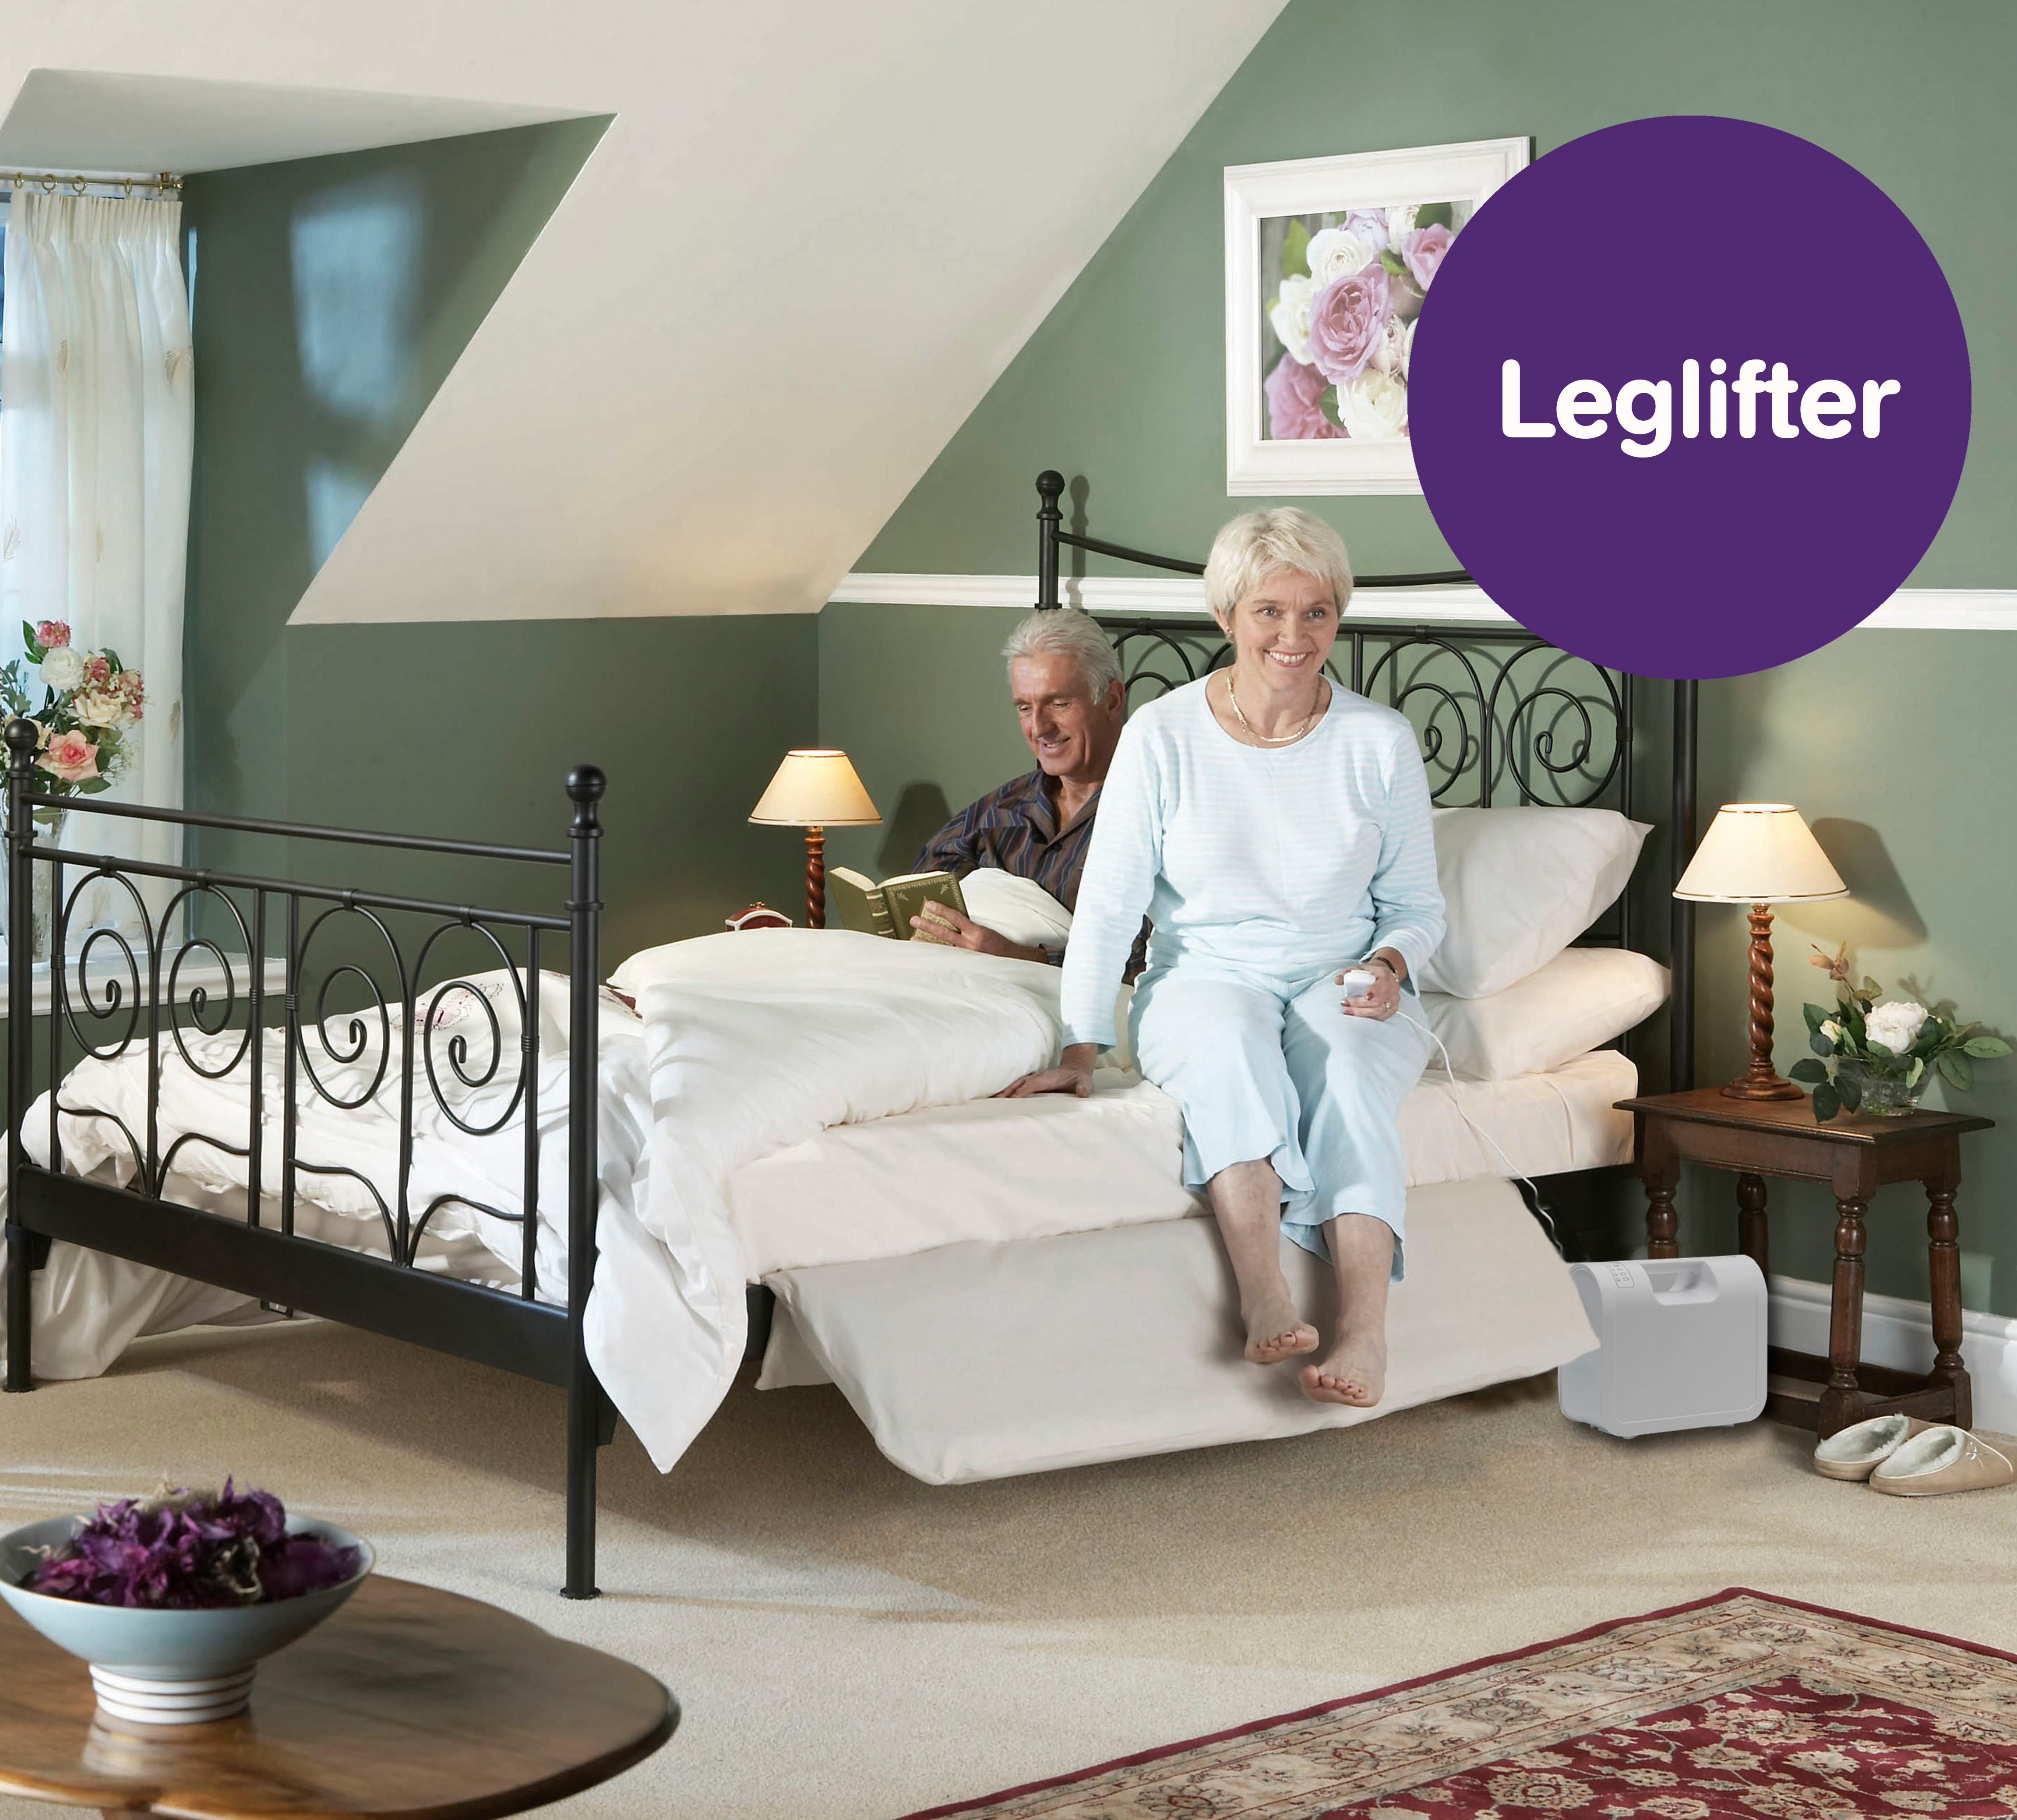 Leglifter For Electric Leg Lifting Bedroom Assistance